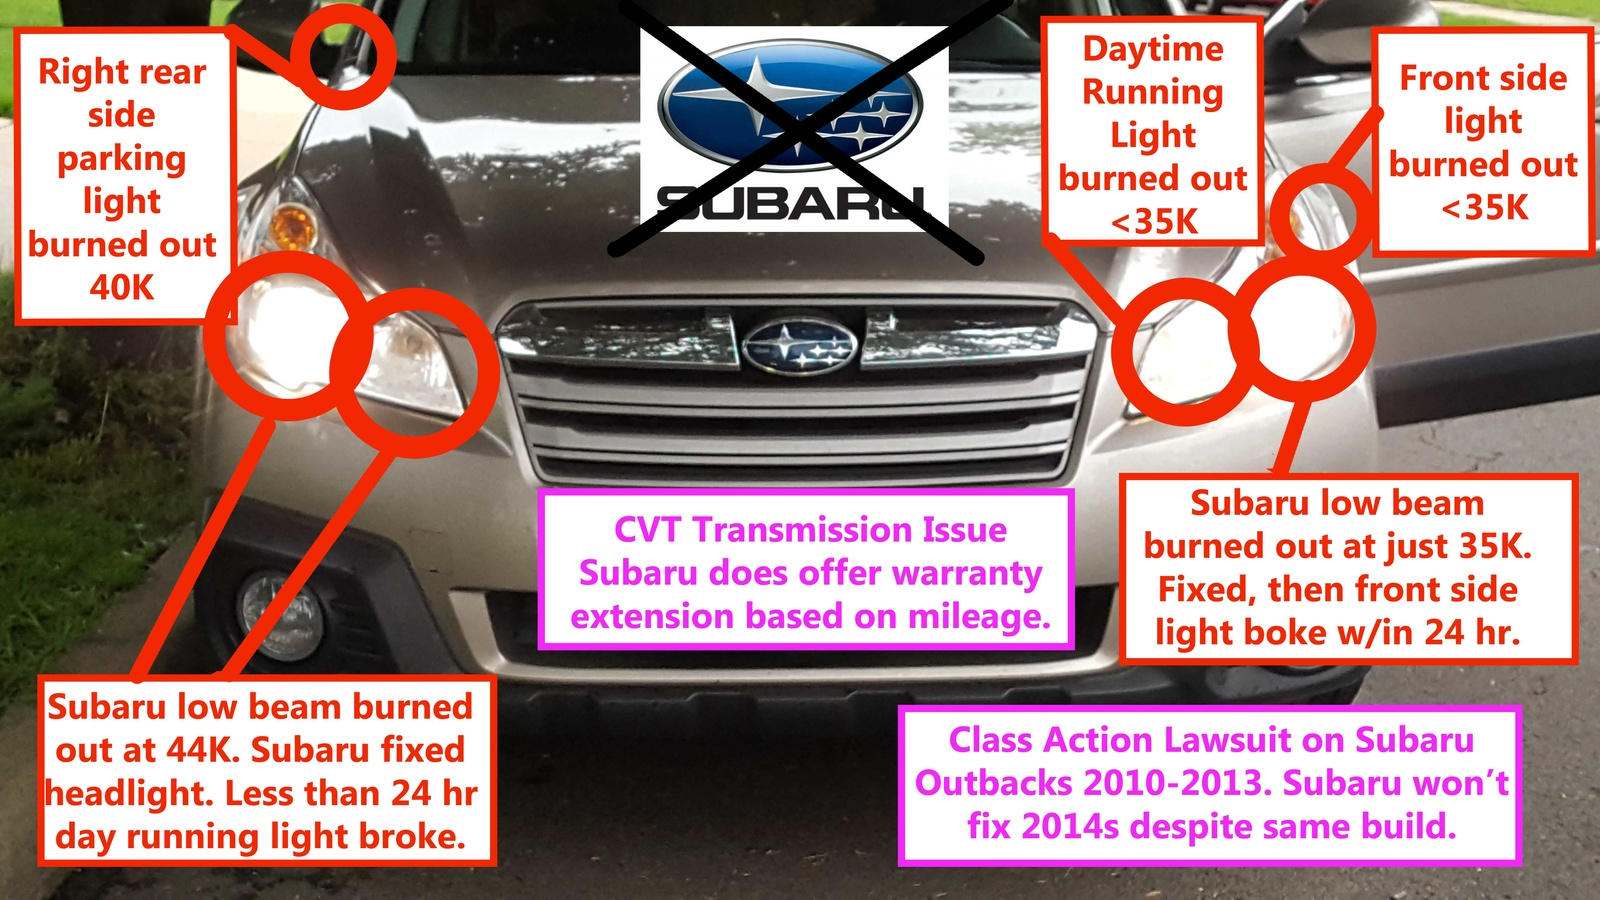 Subaru Outback Questions - 2014 Outback - Constantly Burned Out